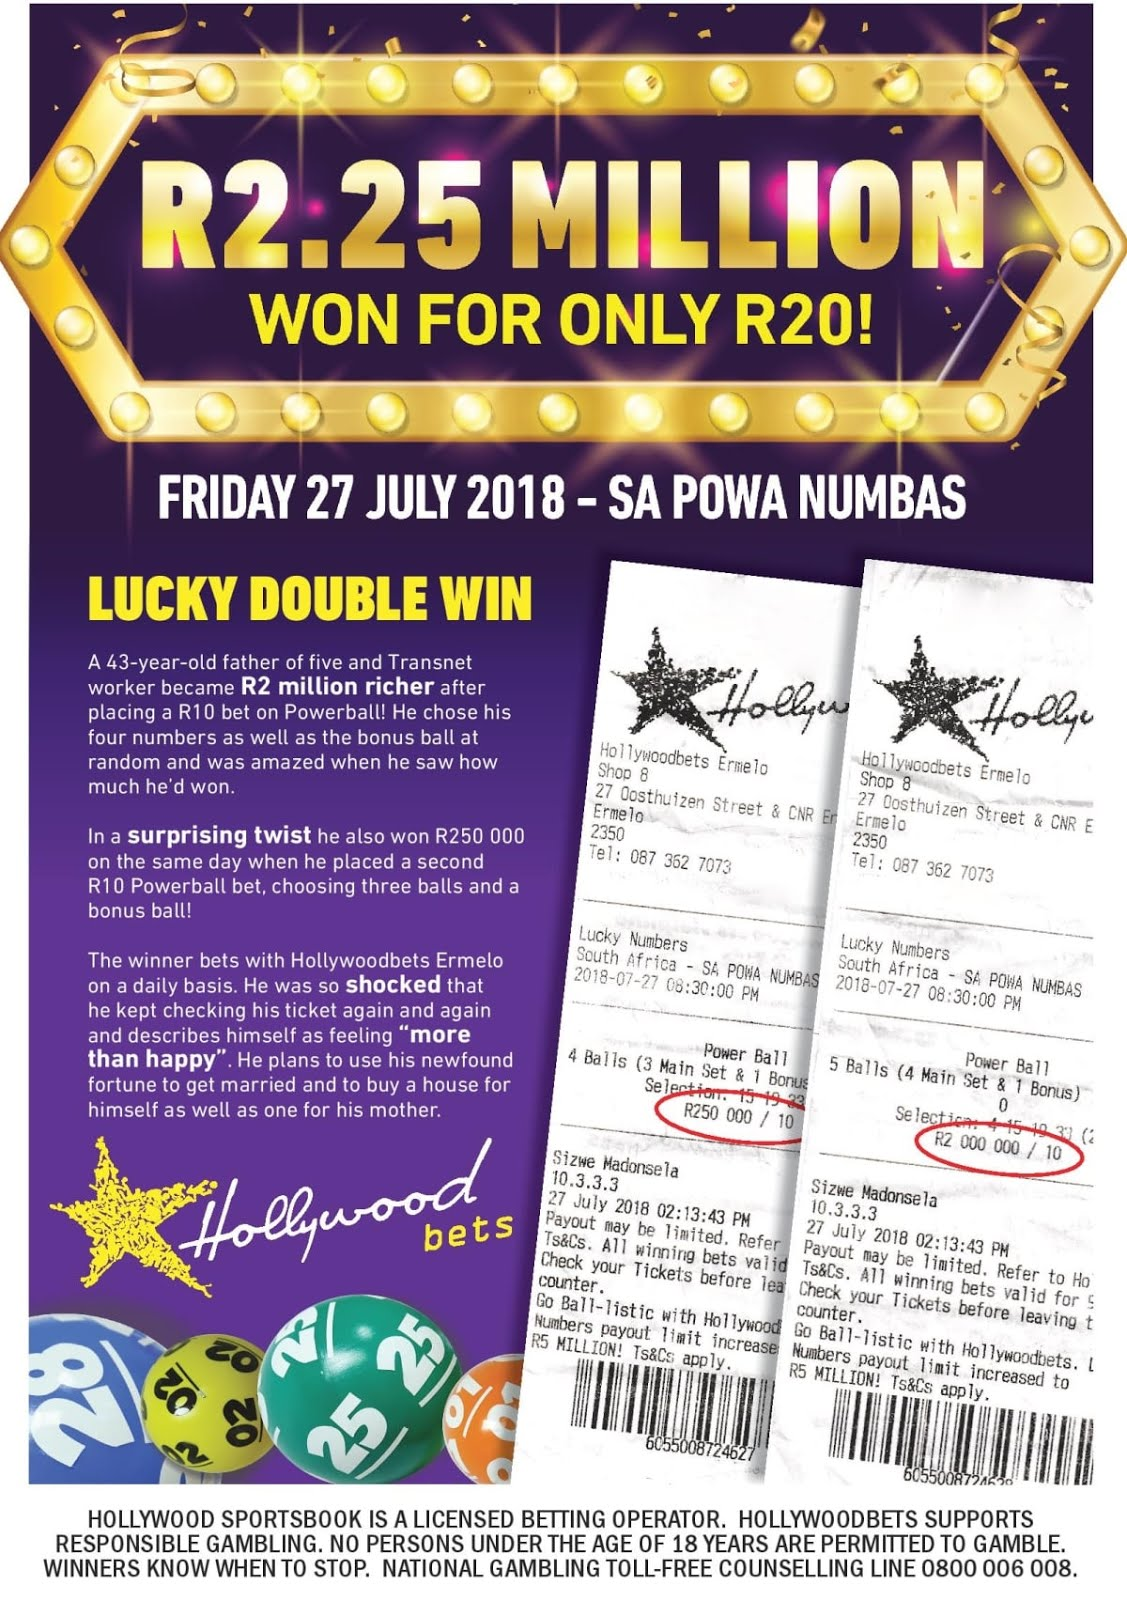 Hollywoodbets customer wins R2.25 Million with just R20! Betting on SA Powa Numbas. 27 July 2018.